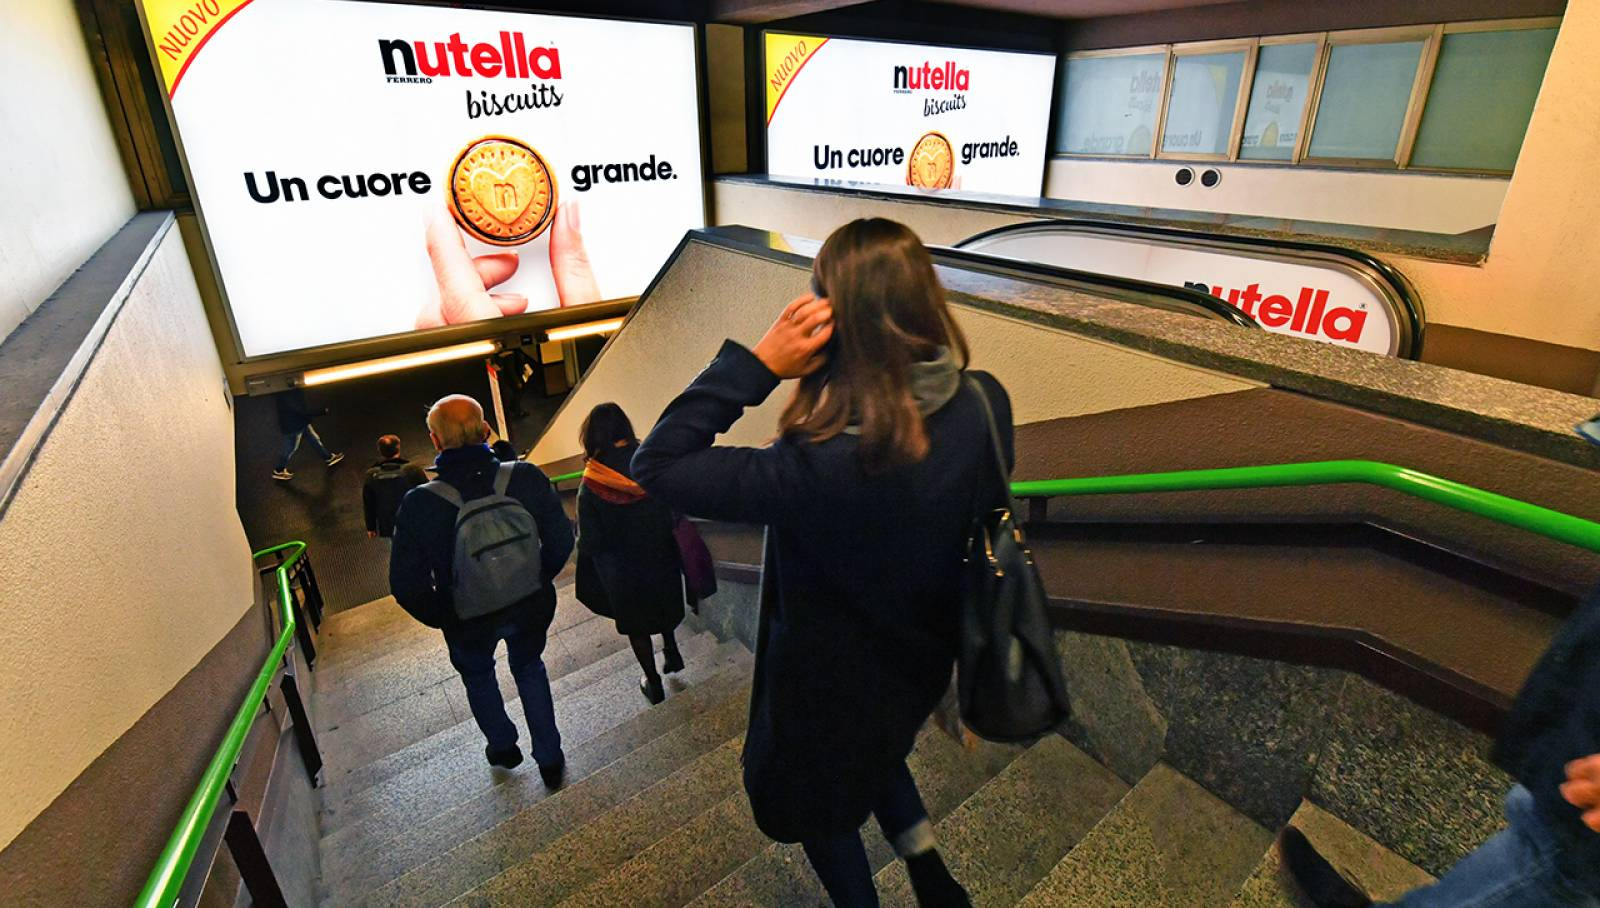 OOH IGPDecaux Station Domination in Milan for Ferrero Nutella Biscuits